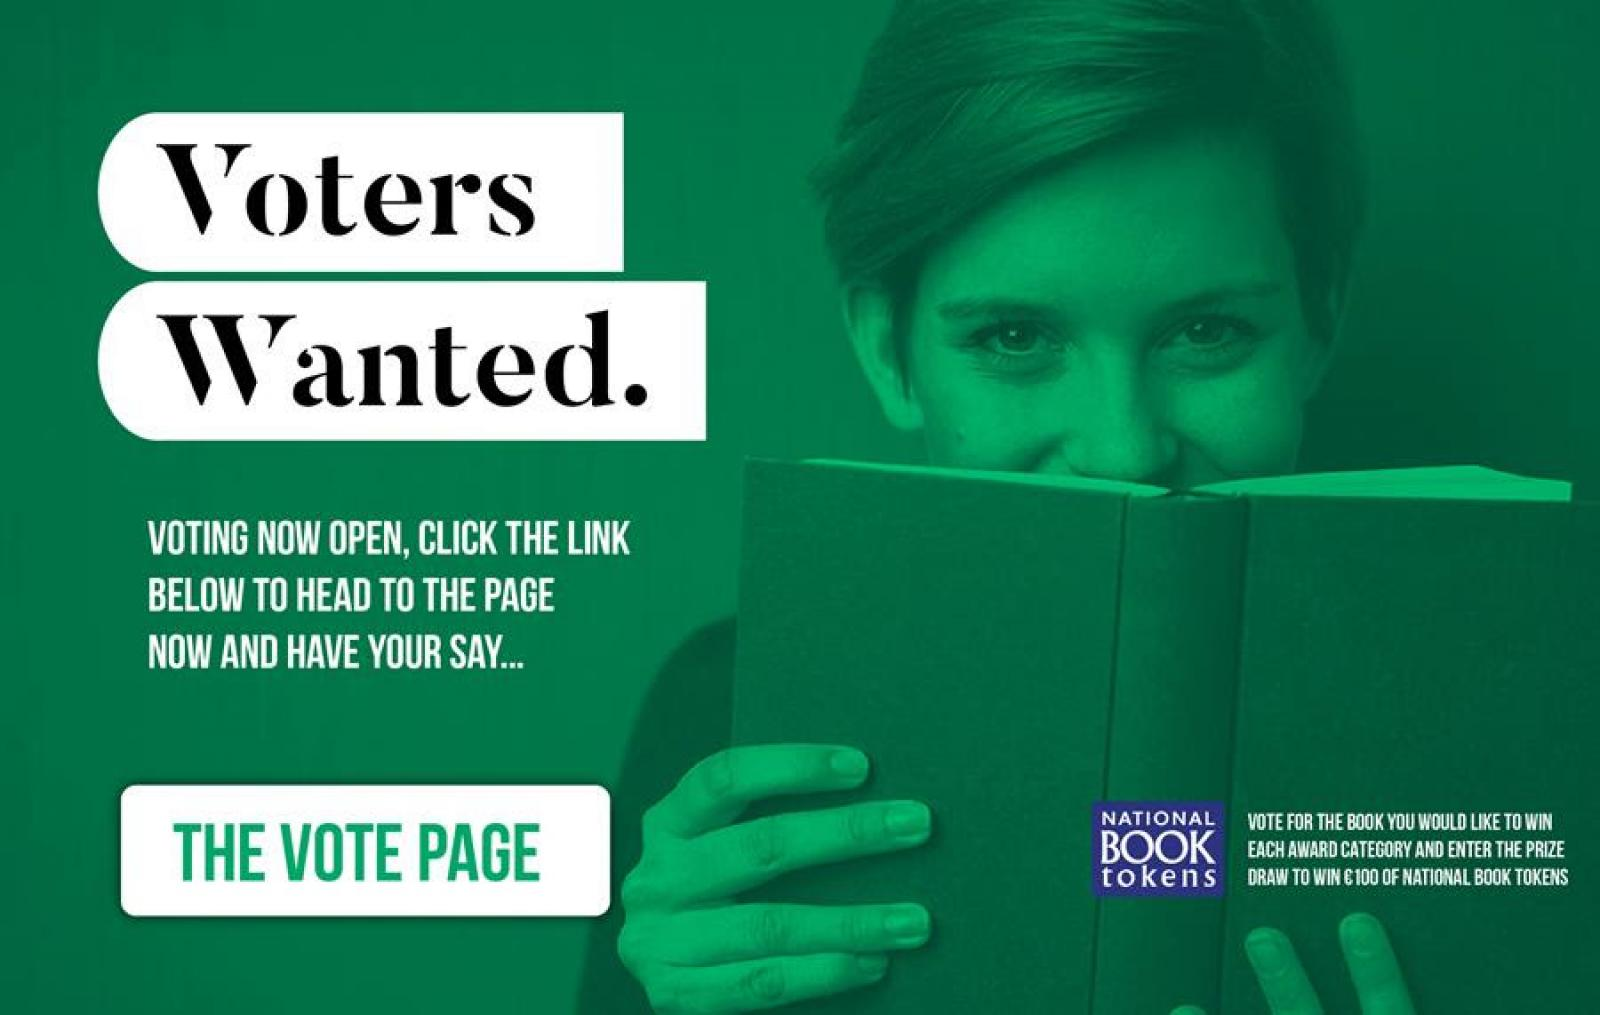 Voters Wanted Caption Beside Picture of Woman Reading